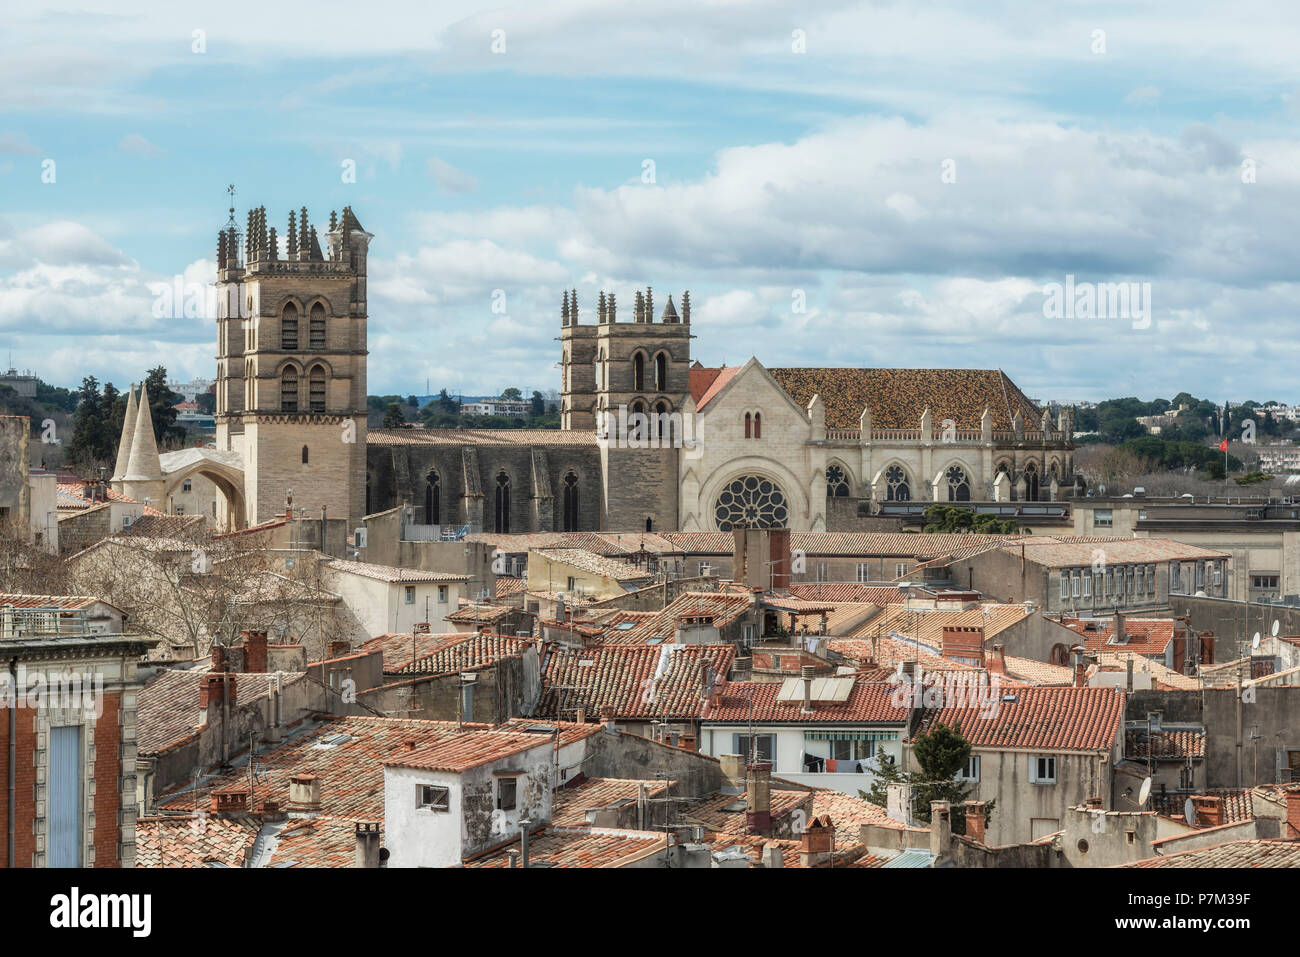 Montpellier, Herault, France, View over the old town with the 16th century cathedral Saint-Pierre de Montpellier. - Stock Image